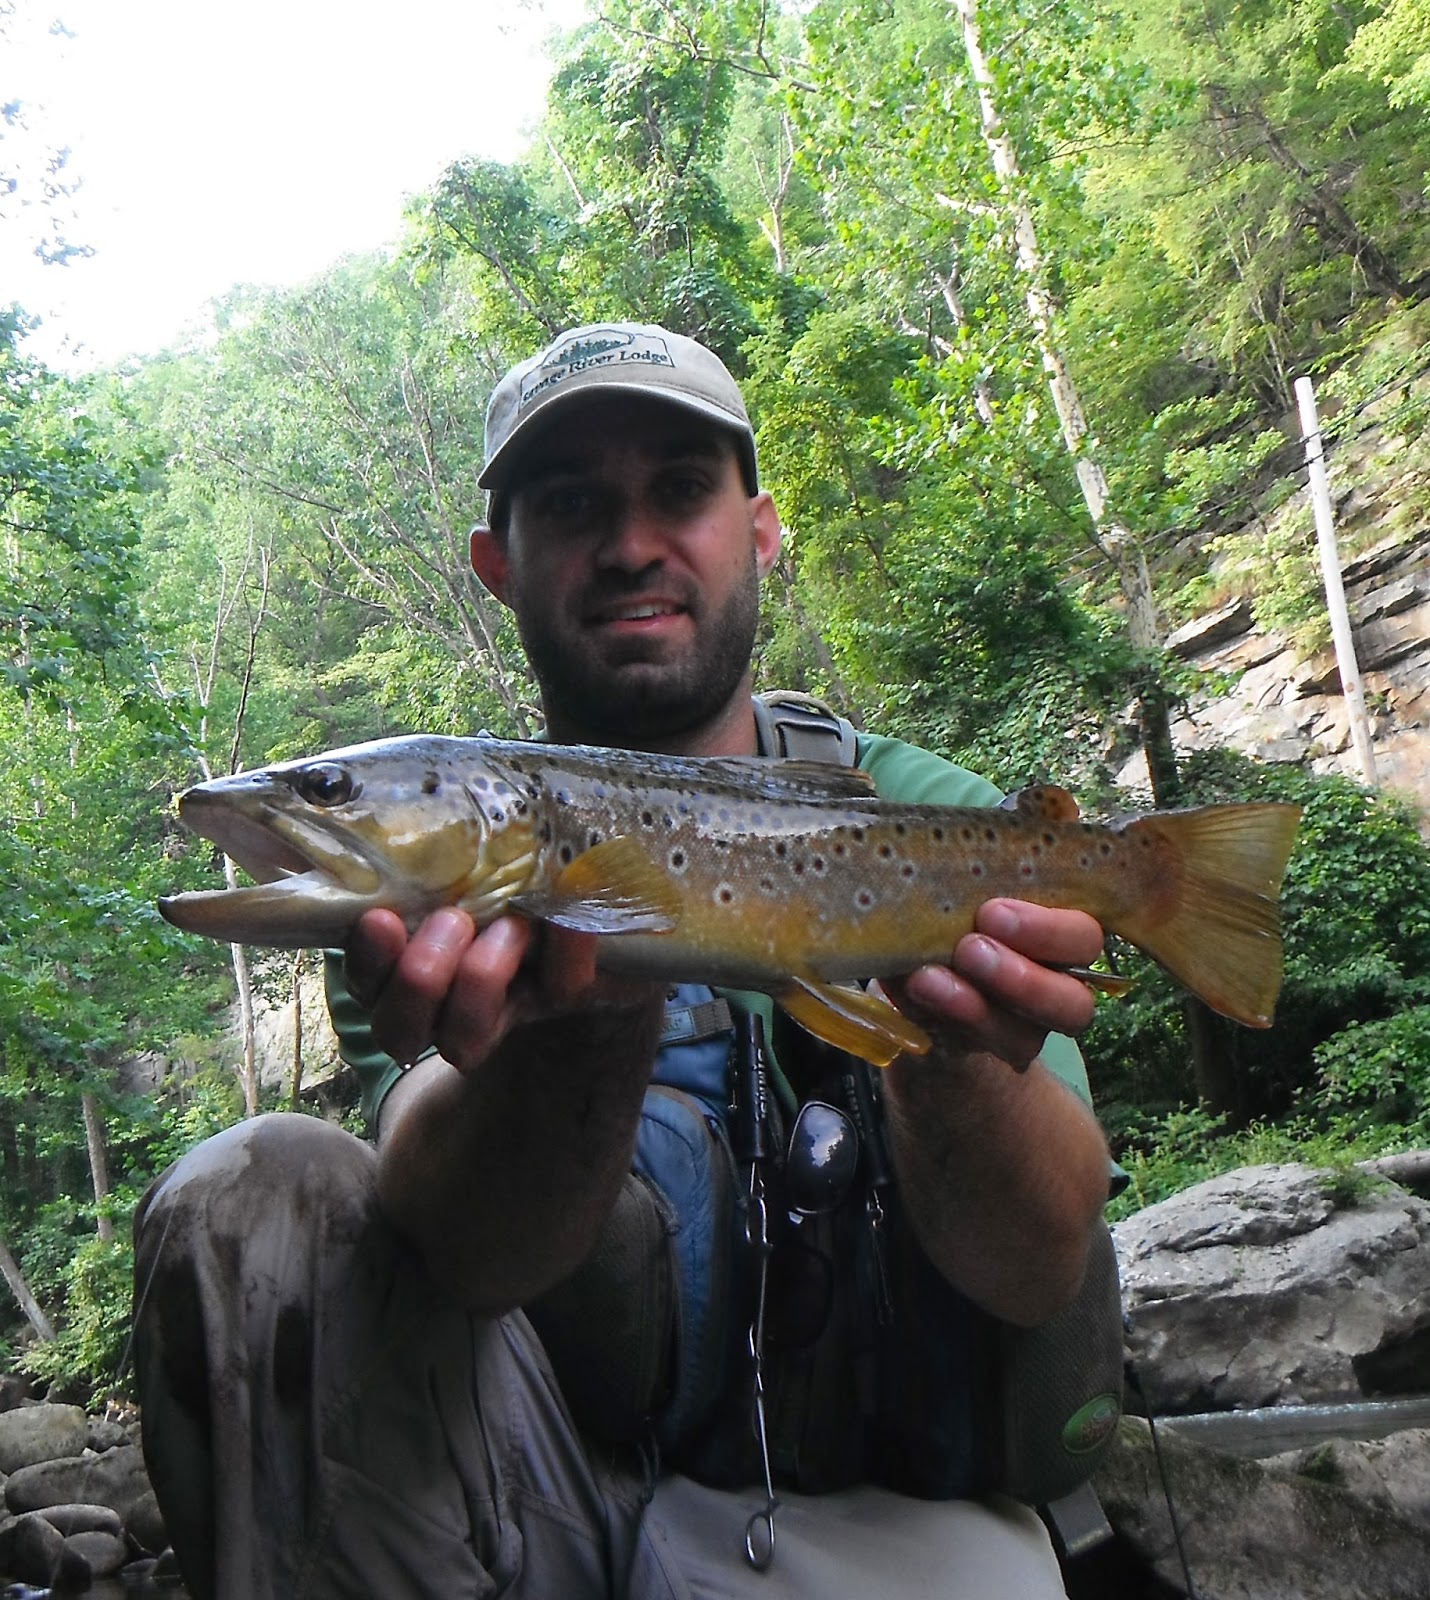 Western maryland fly fishing get out there and fish for Md trout fishing